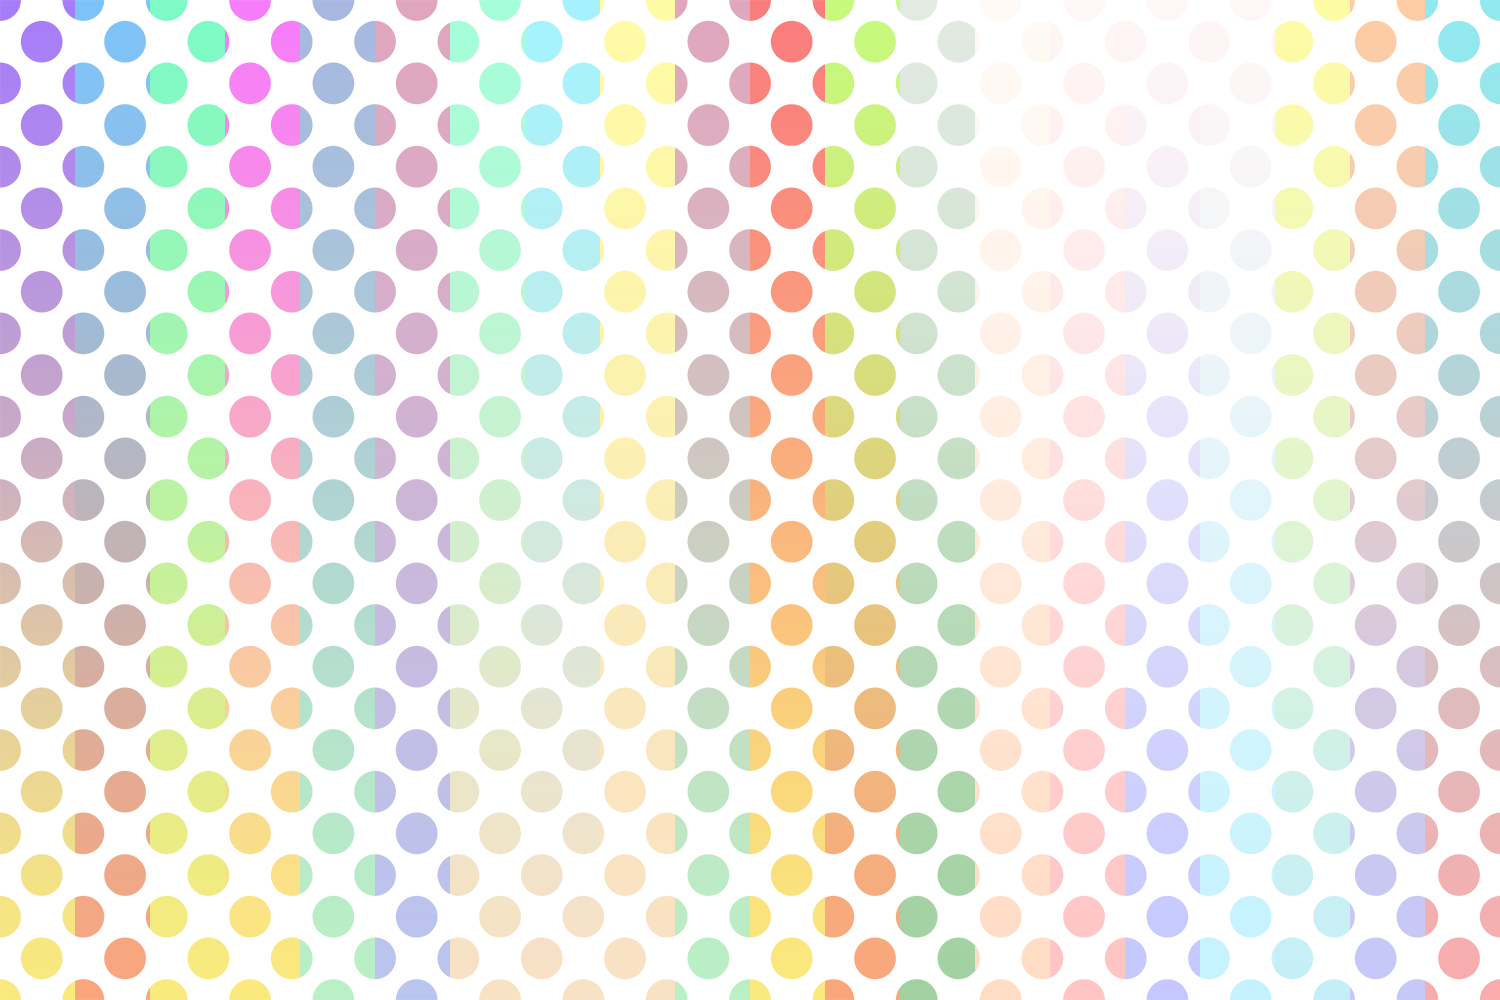 60 Gradient Dot Patterns example image 2